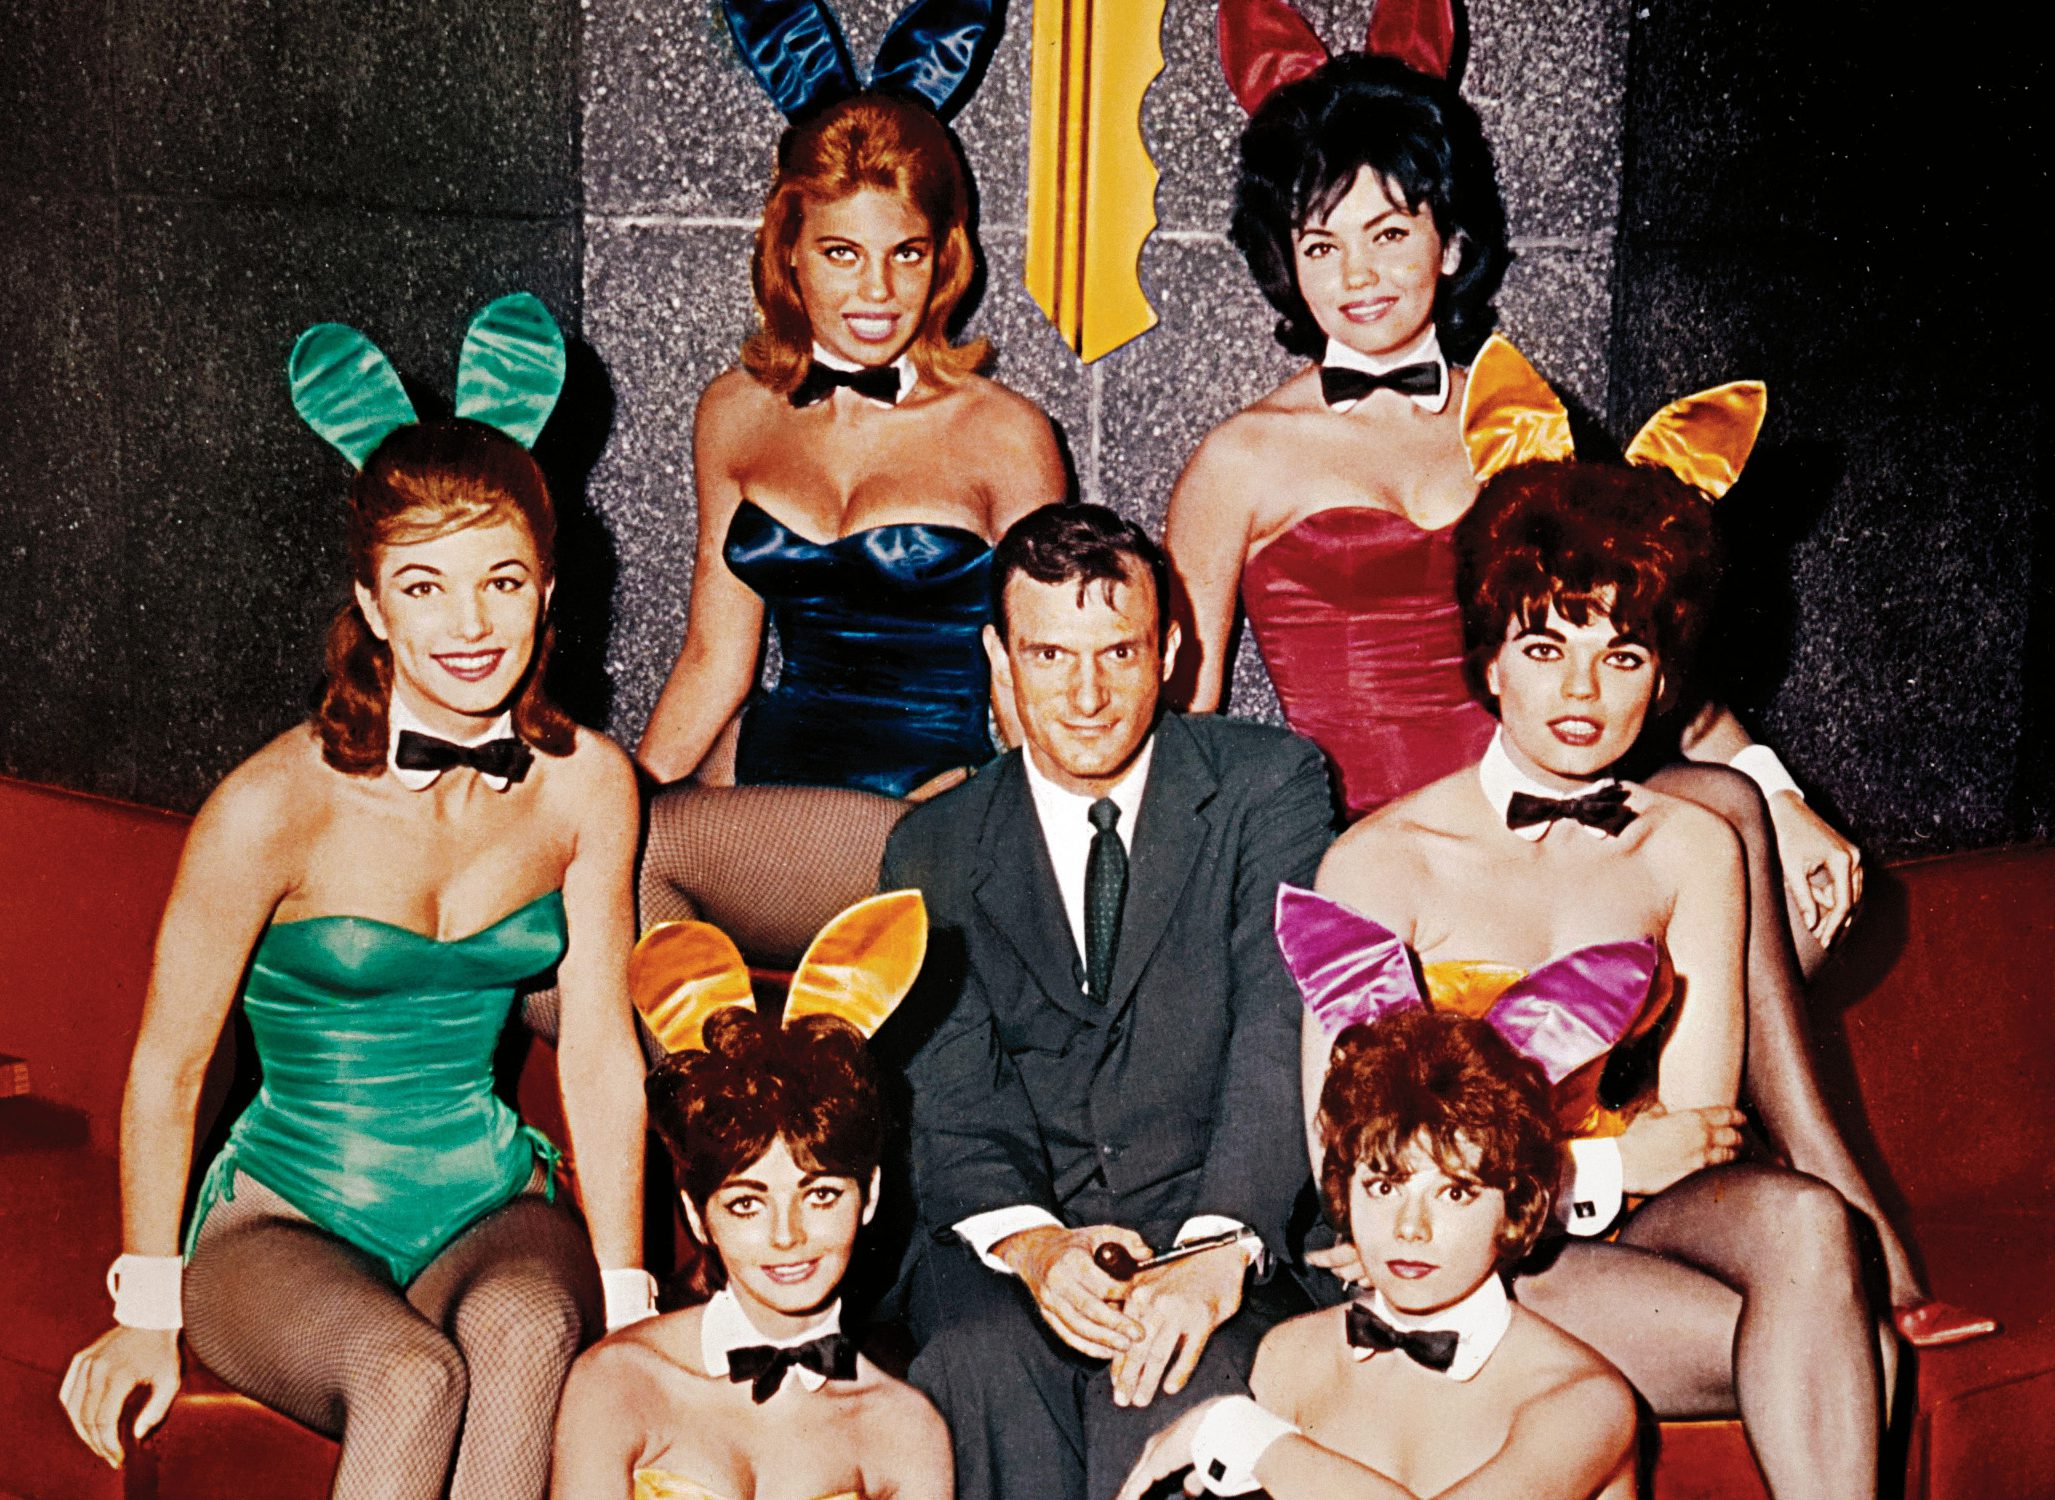 Hugh Hefner 1926 2017 The Playboy Founder S Life In Photos Indiewire